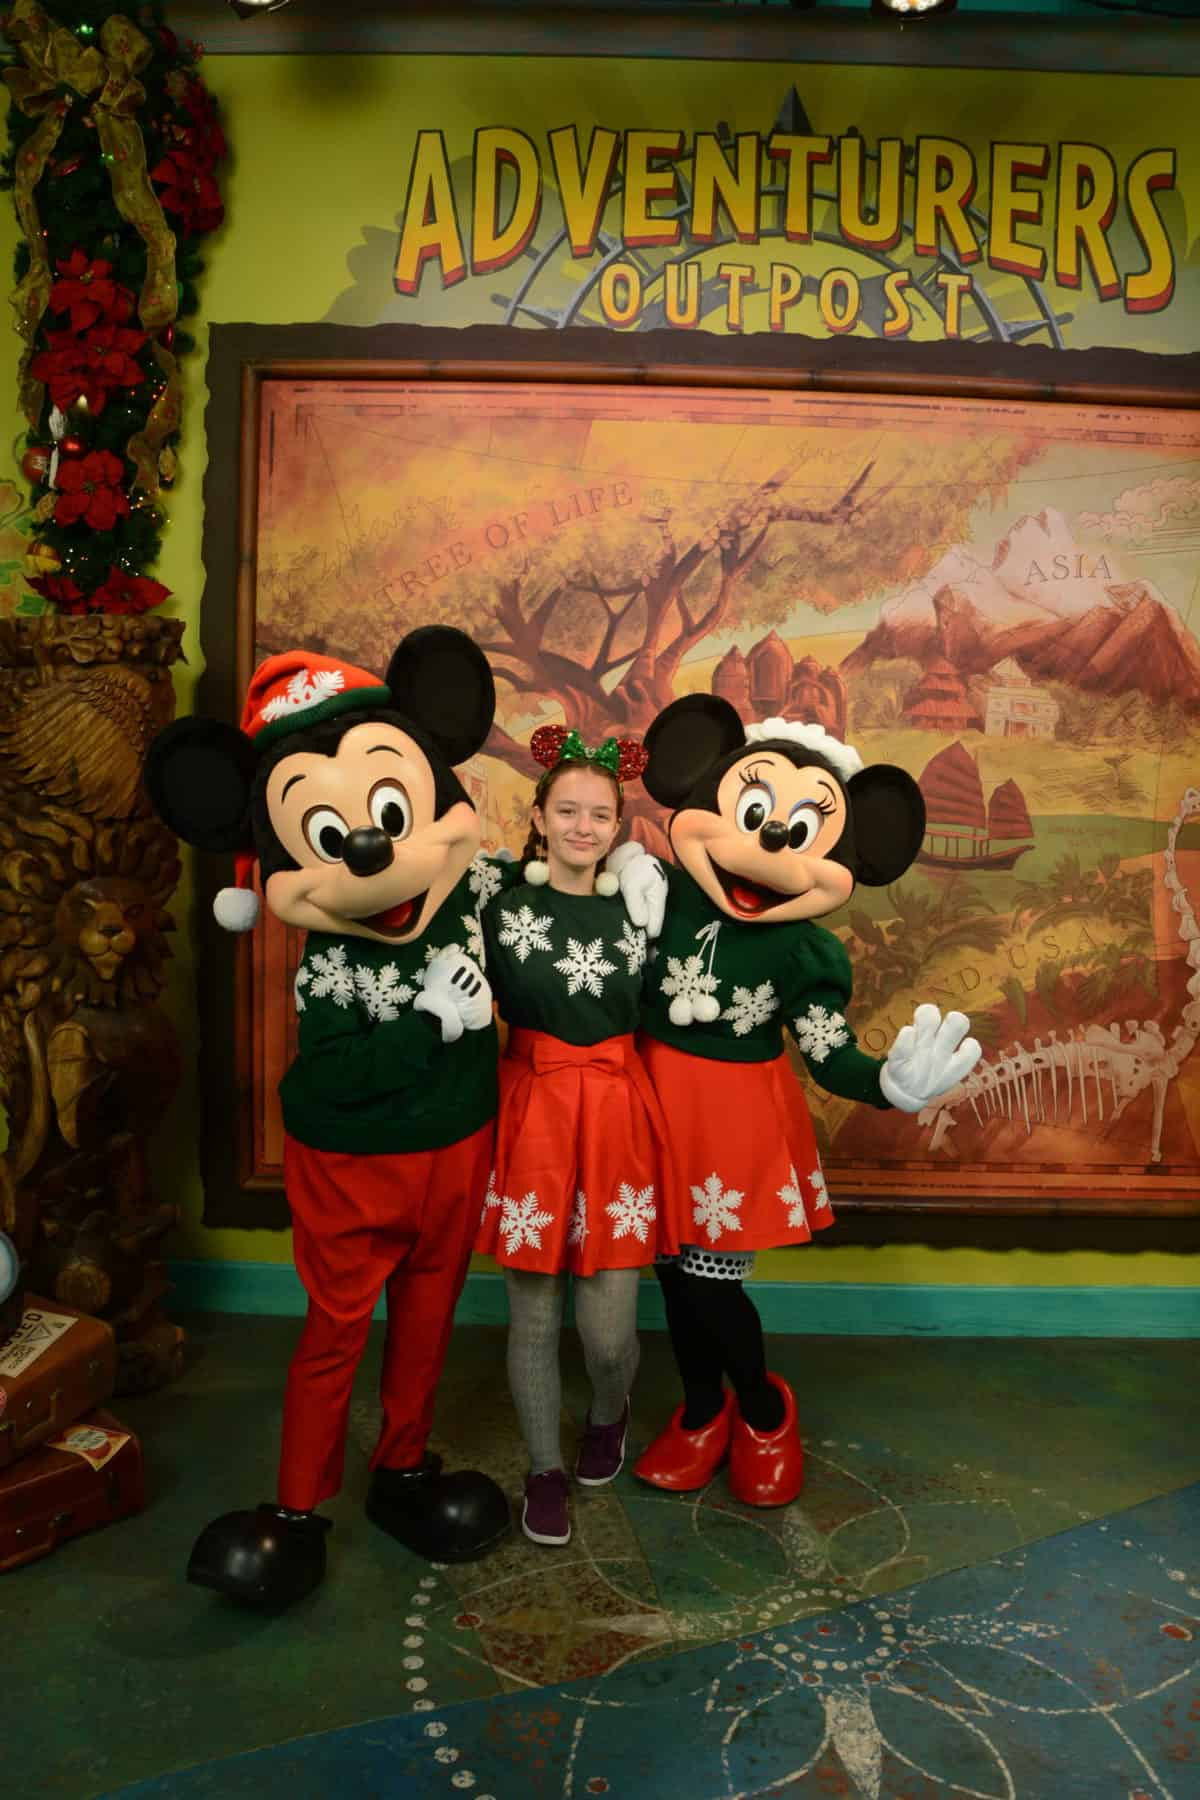 disney photo spots, disney holiday photos, disney christmas photos, disney holiday pictures, disney holiday photo opps